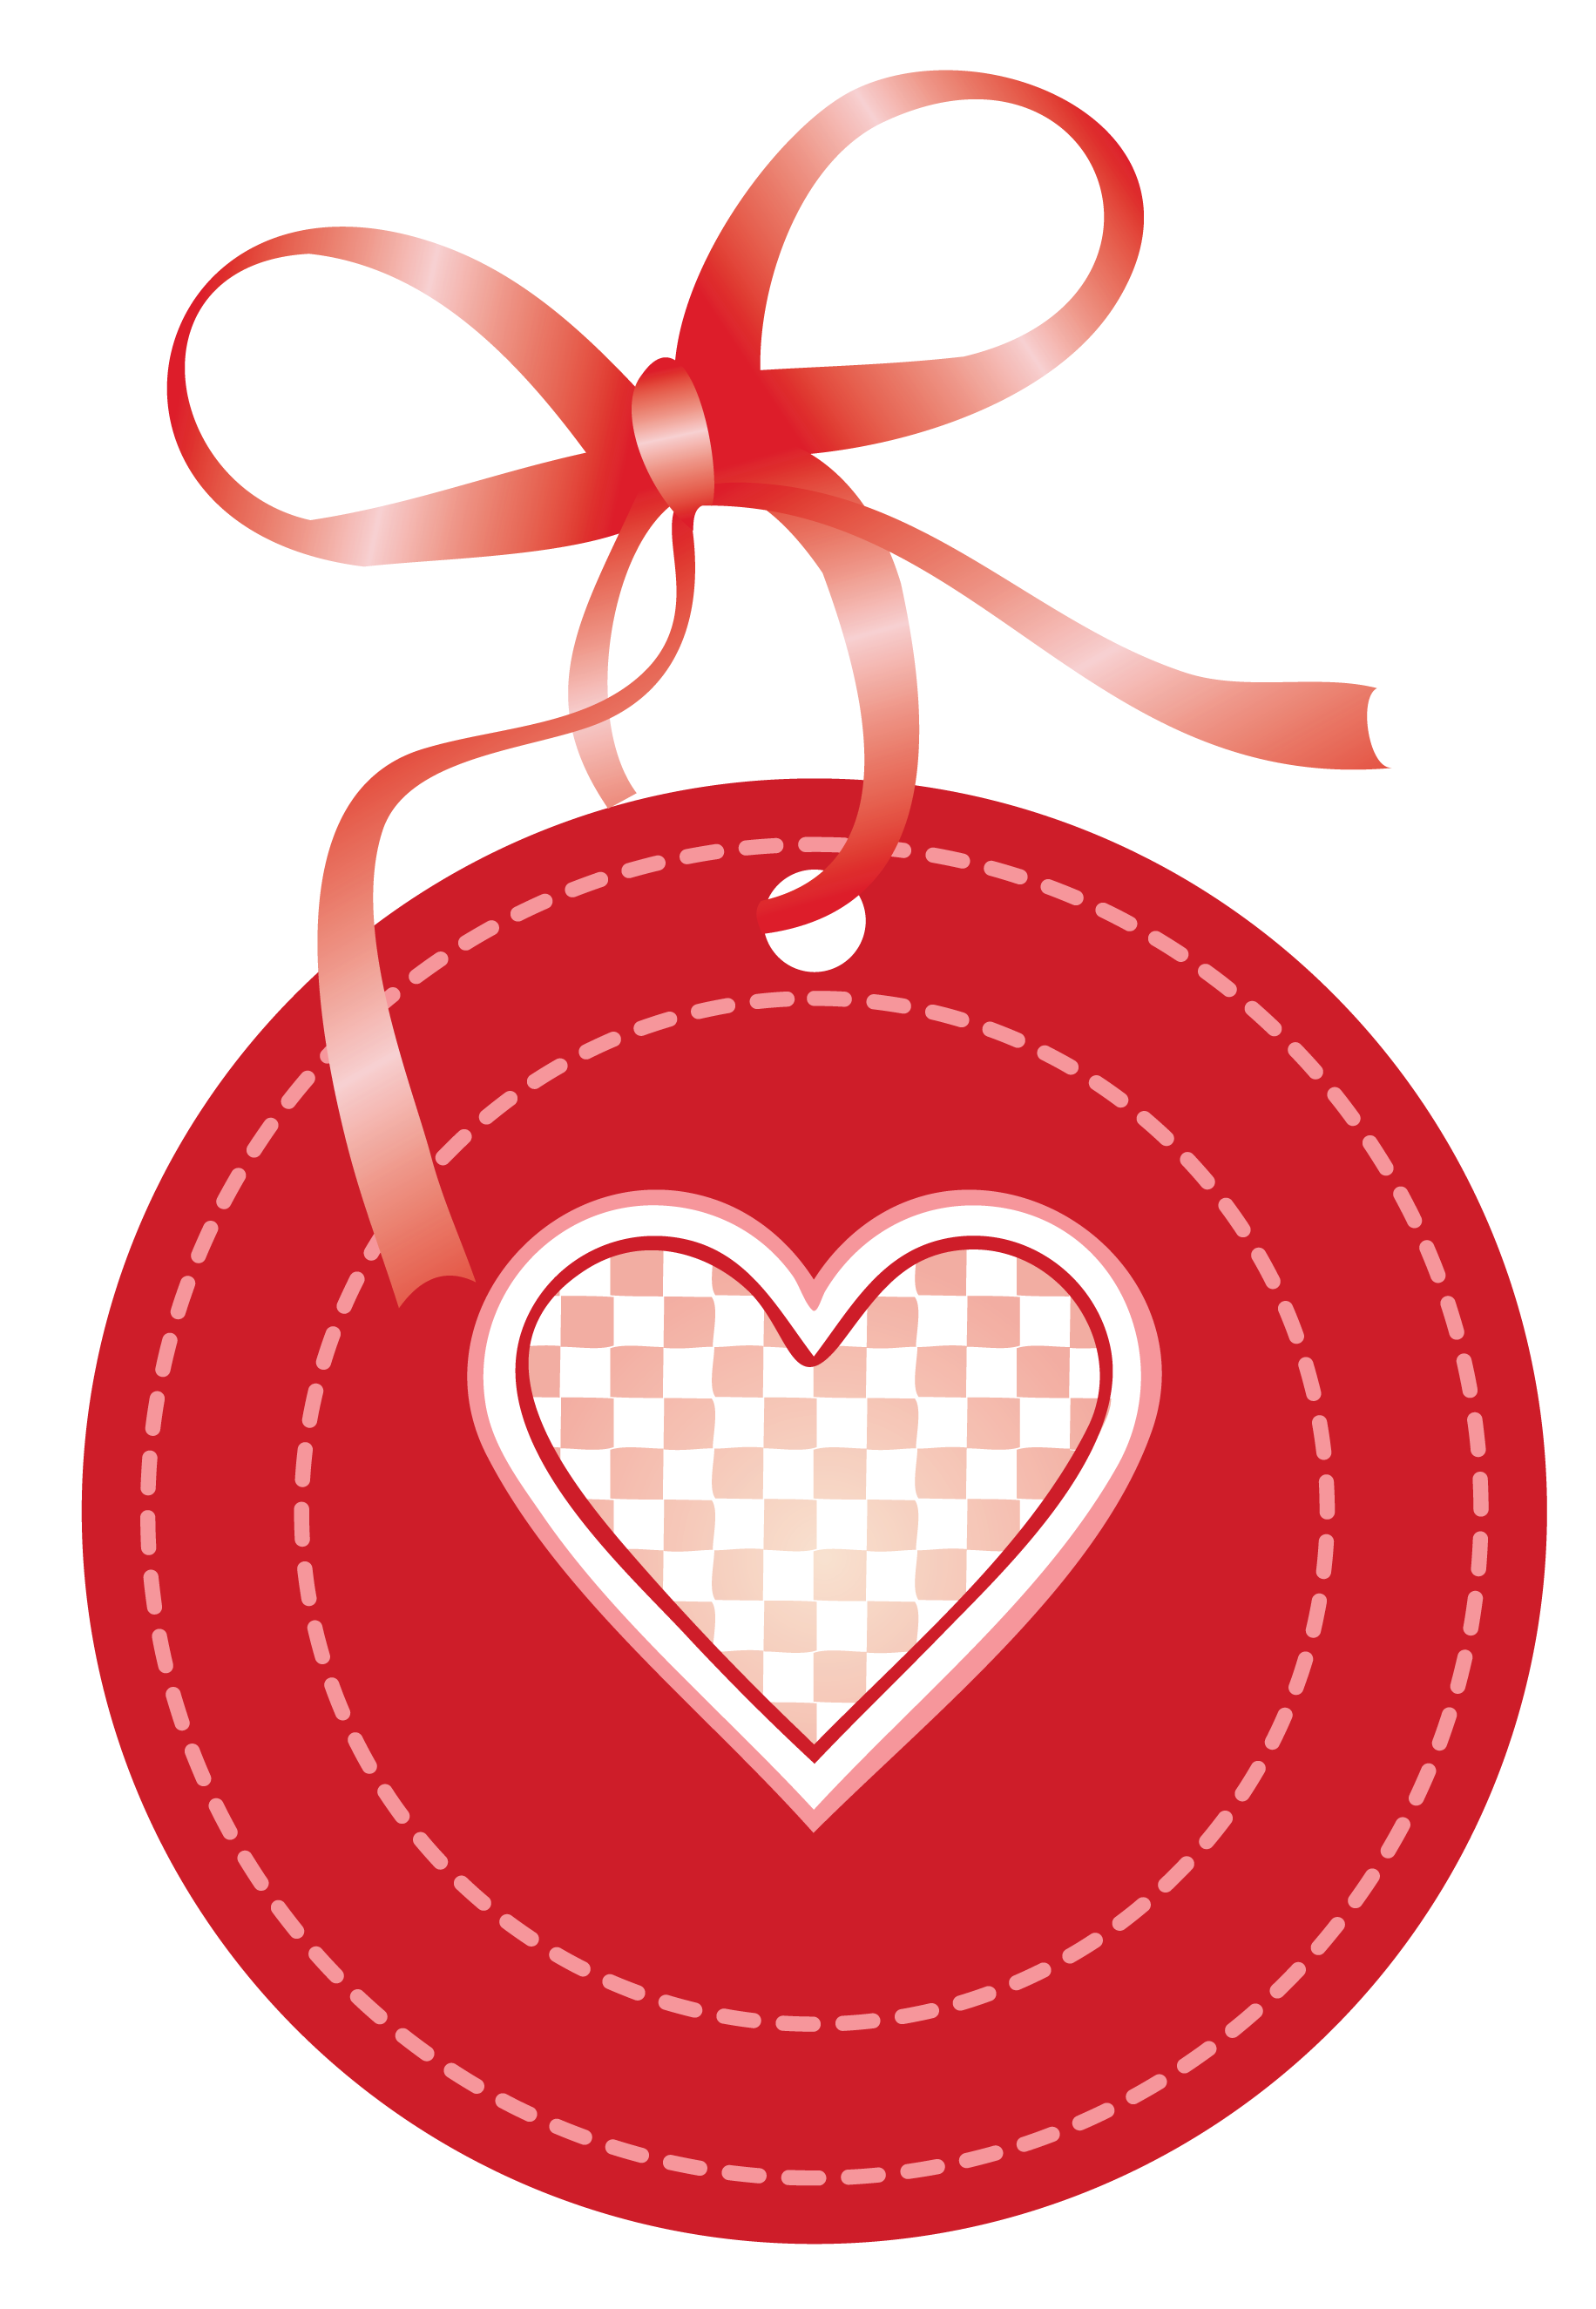 Clipart hearts christmas. Valentine oval label with